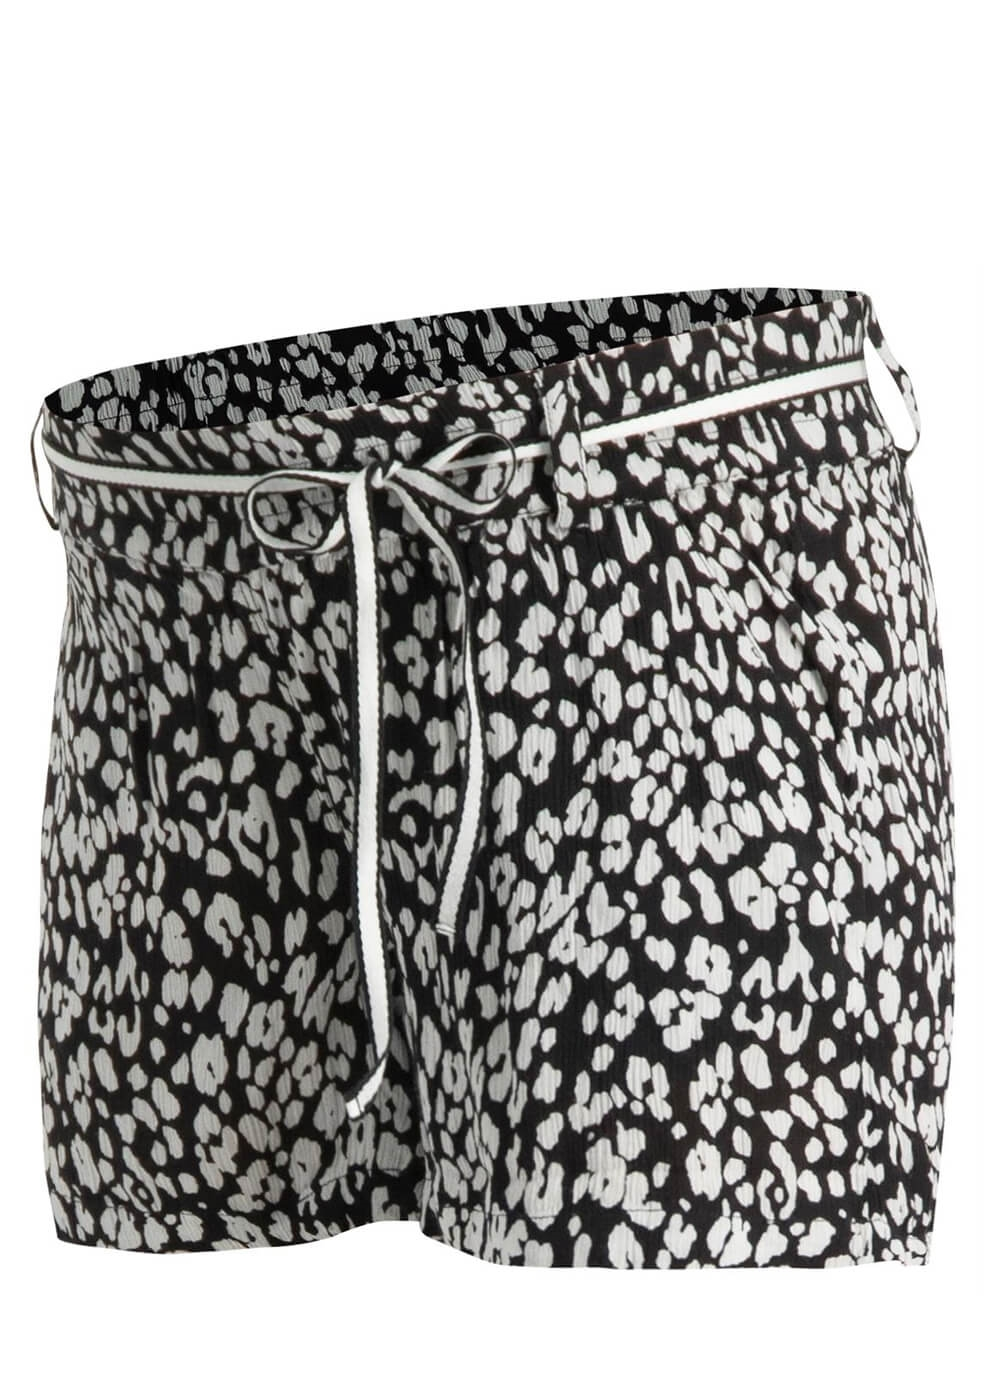 Supermom - Leopard Print Maternity Shorts | Queen Bee